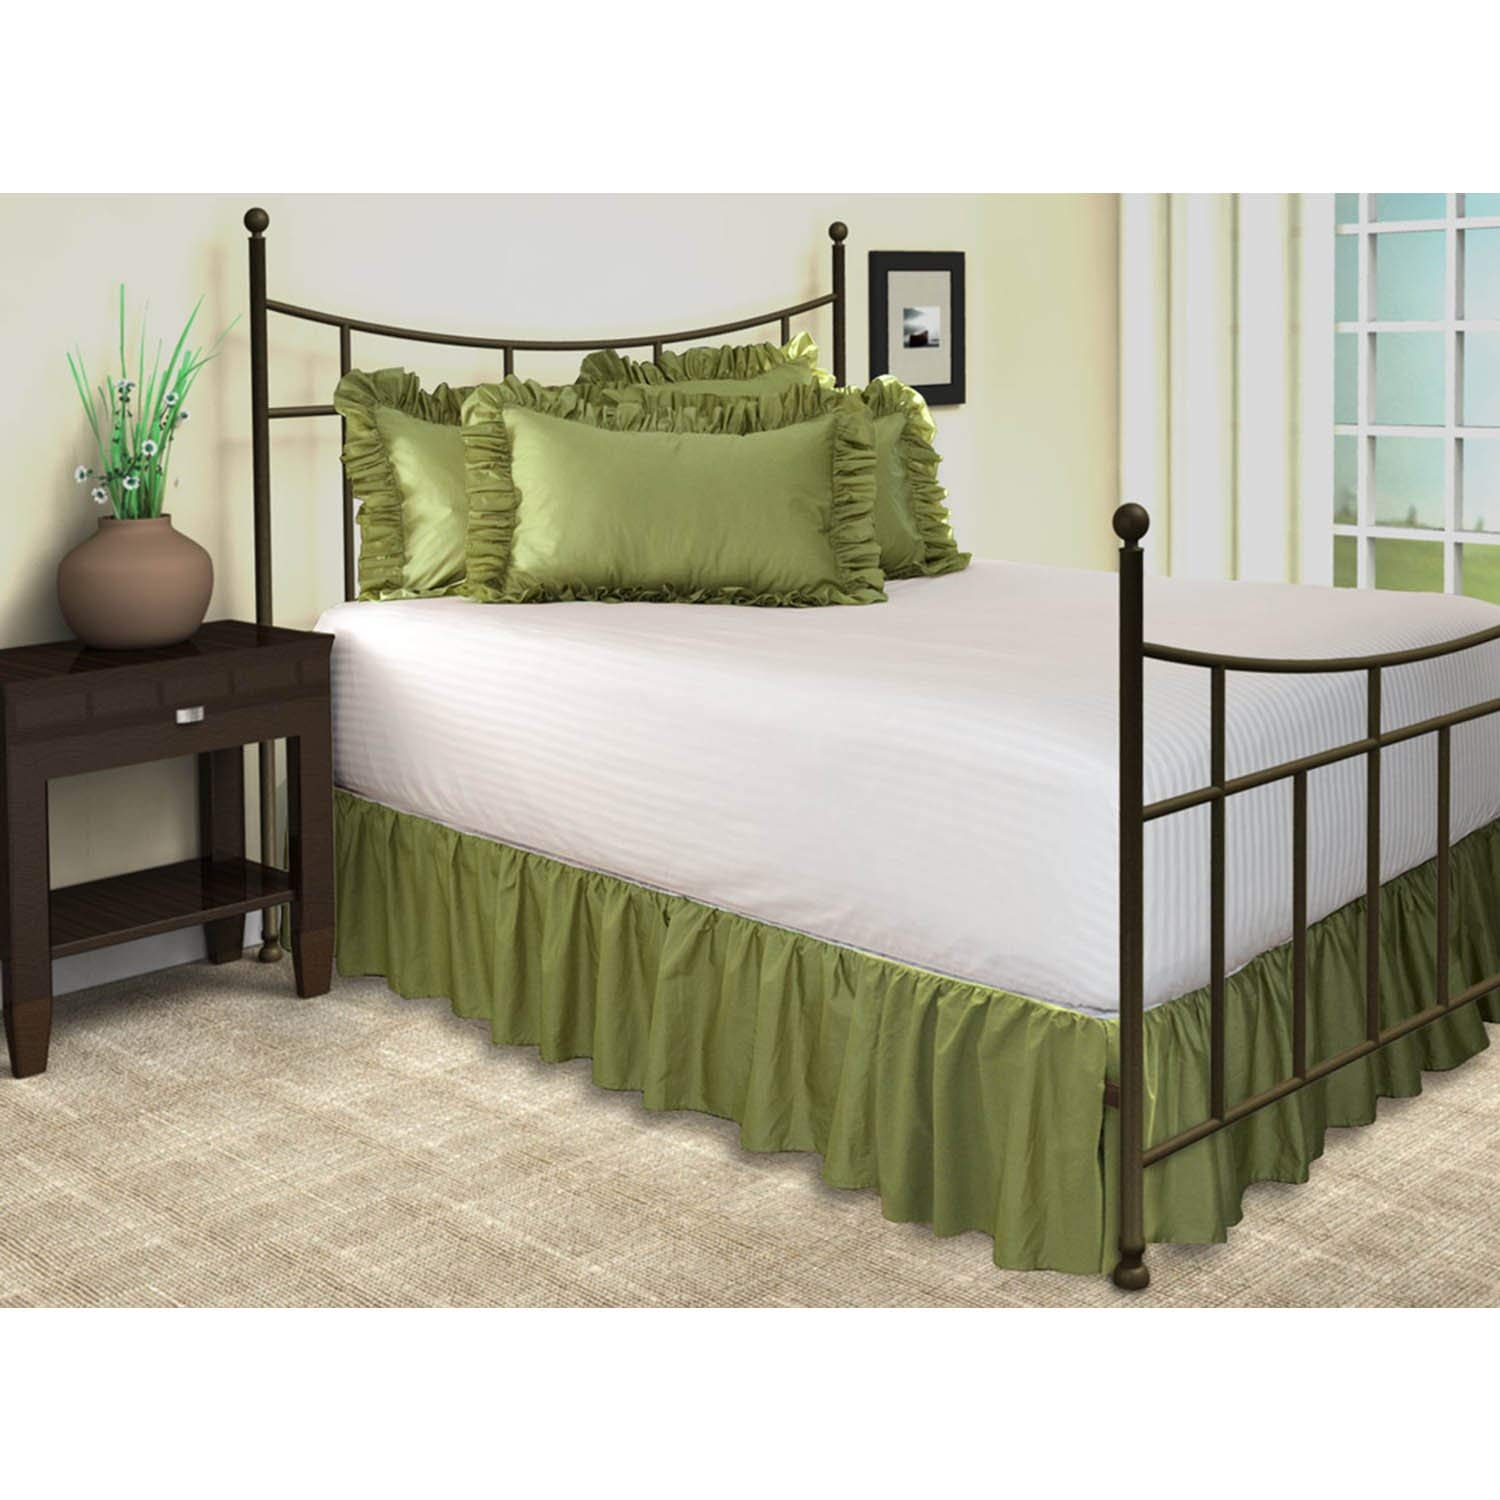 Use Green Bed Skirt